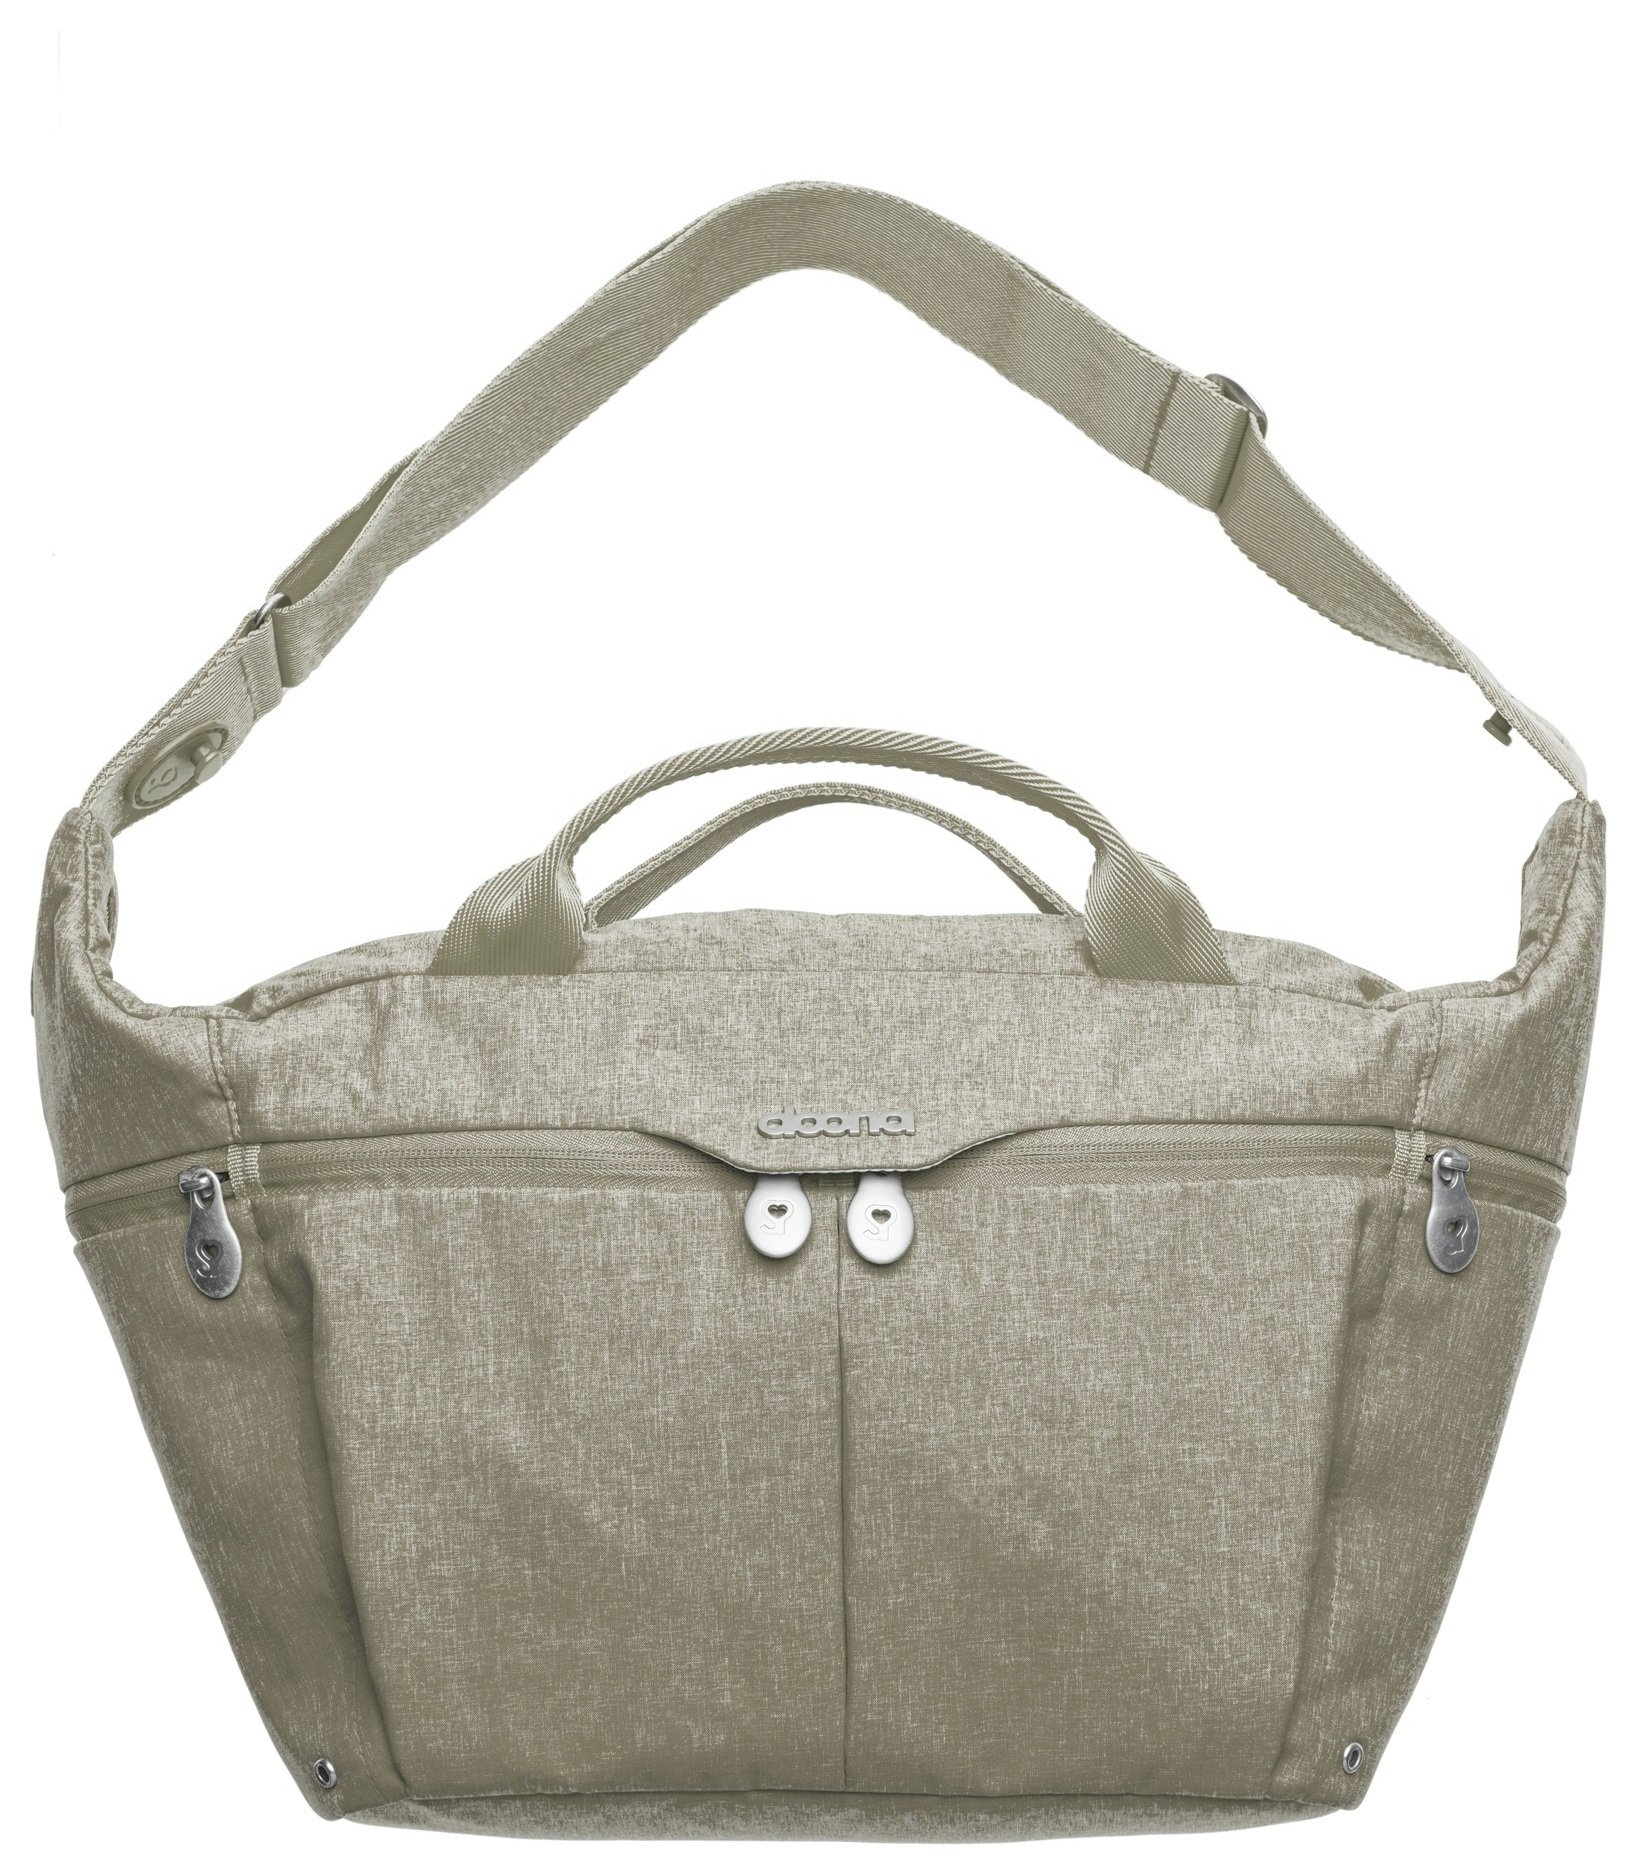 Image of Doona All Day Clip On - Changing Bag - Dune